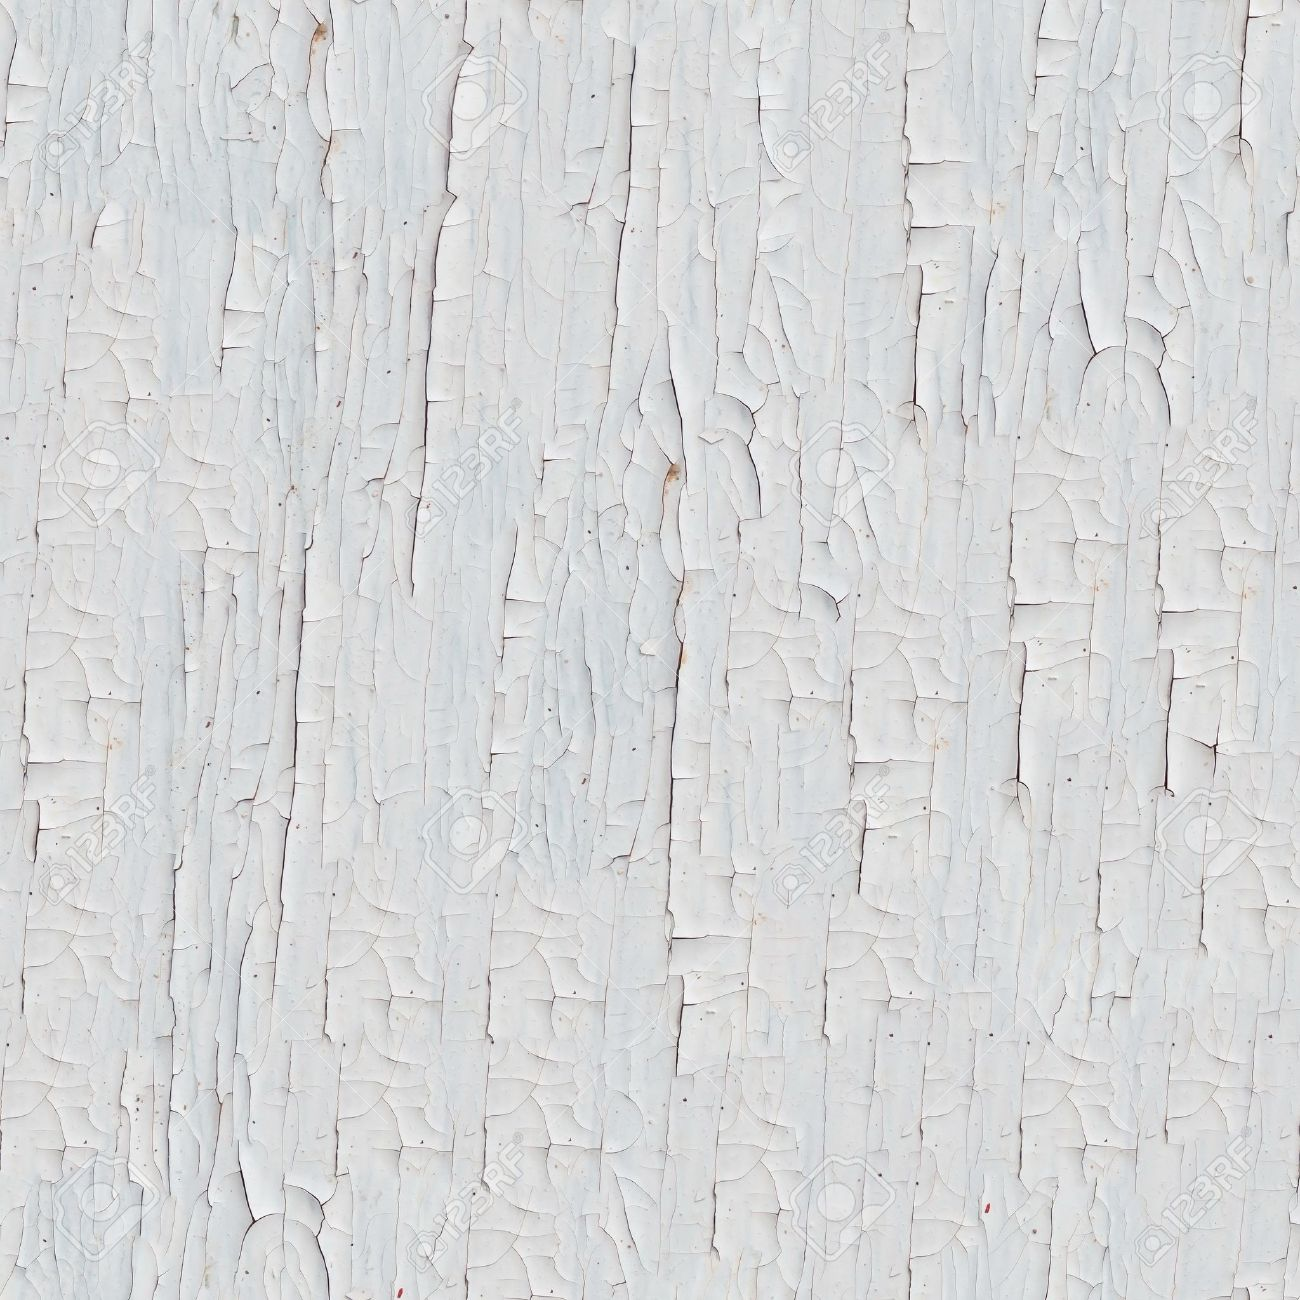 Stunning Stock Photo Cracked Paint Seamless Tileable Texture Cracked Paint Seamless Tileable Texture Stock Cracked Paint Texture Vector Cracked Paint Texture dpreview Cracked Paint Texture